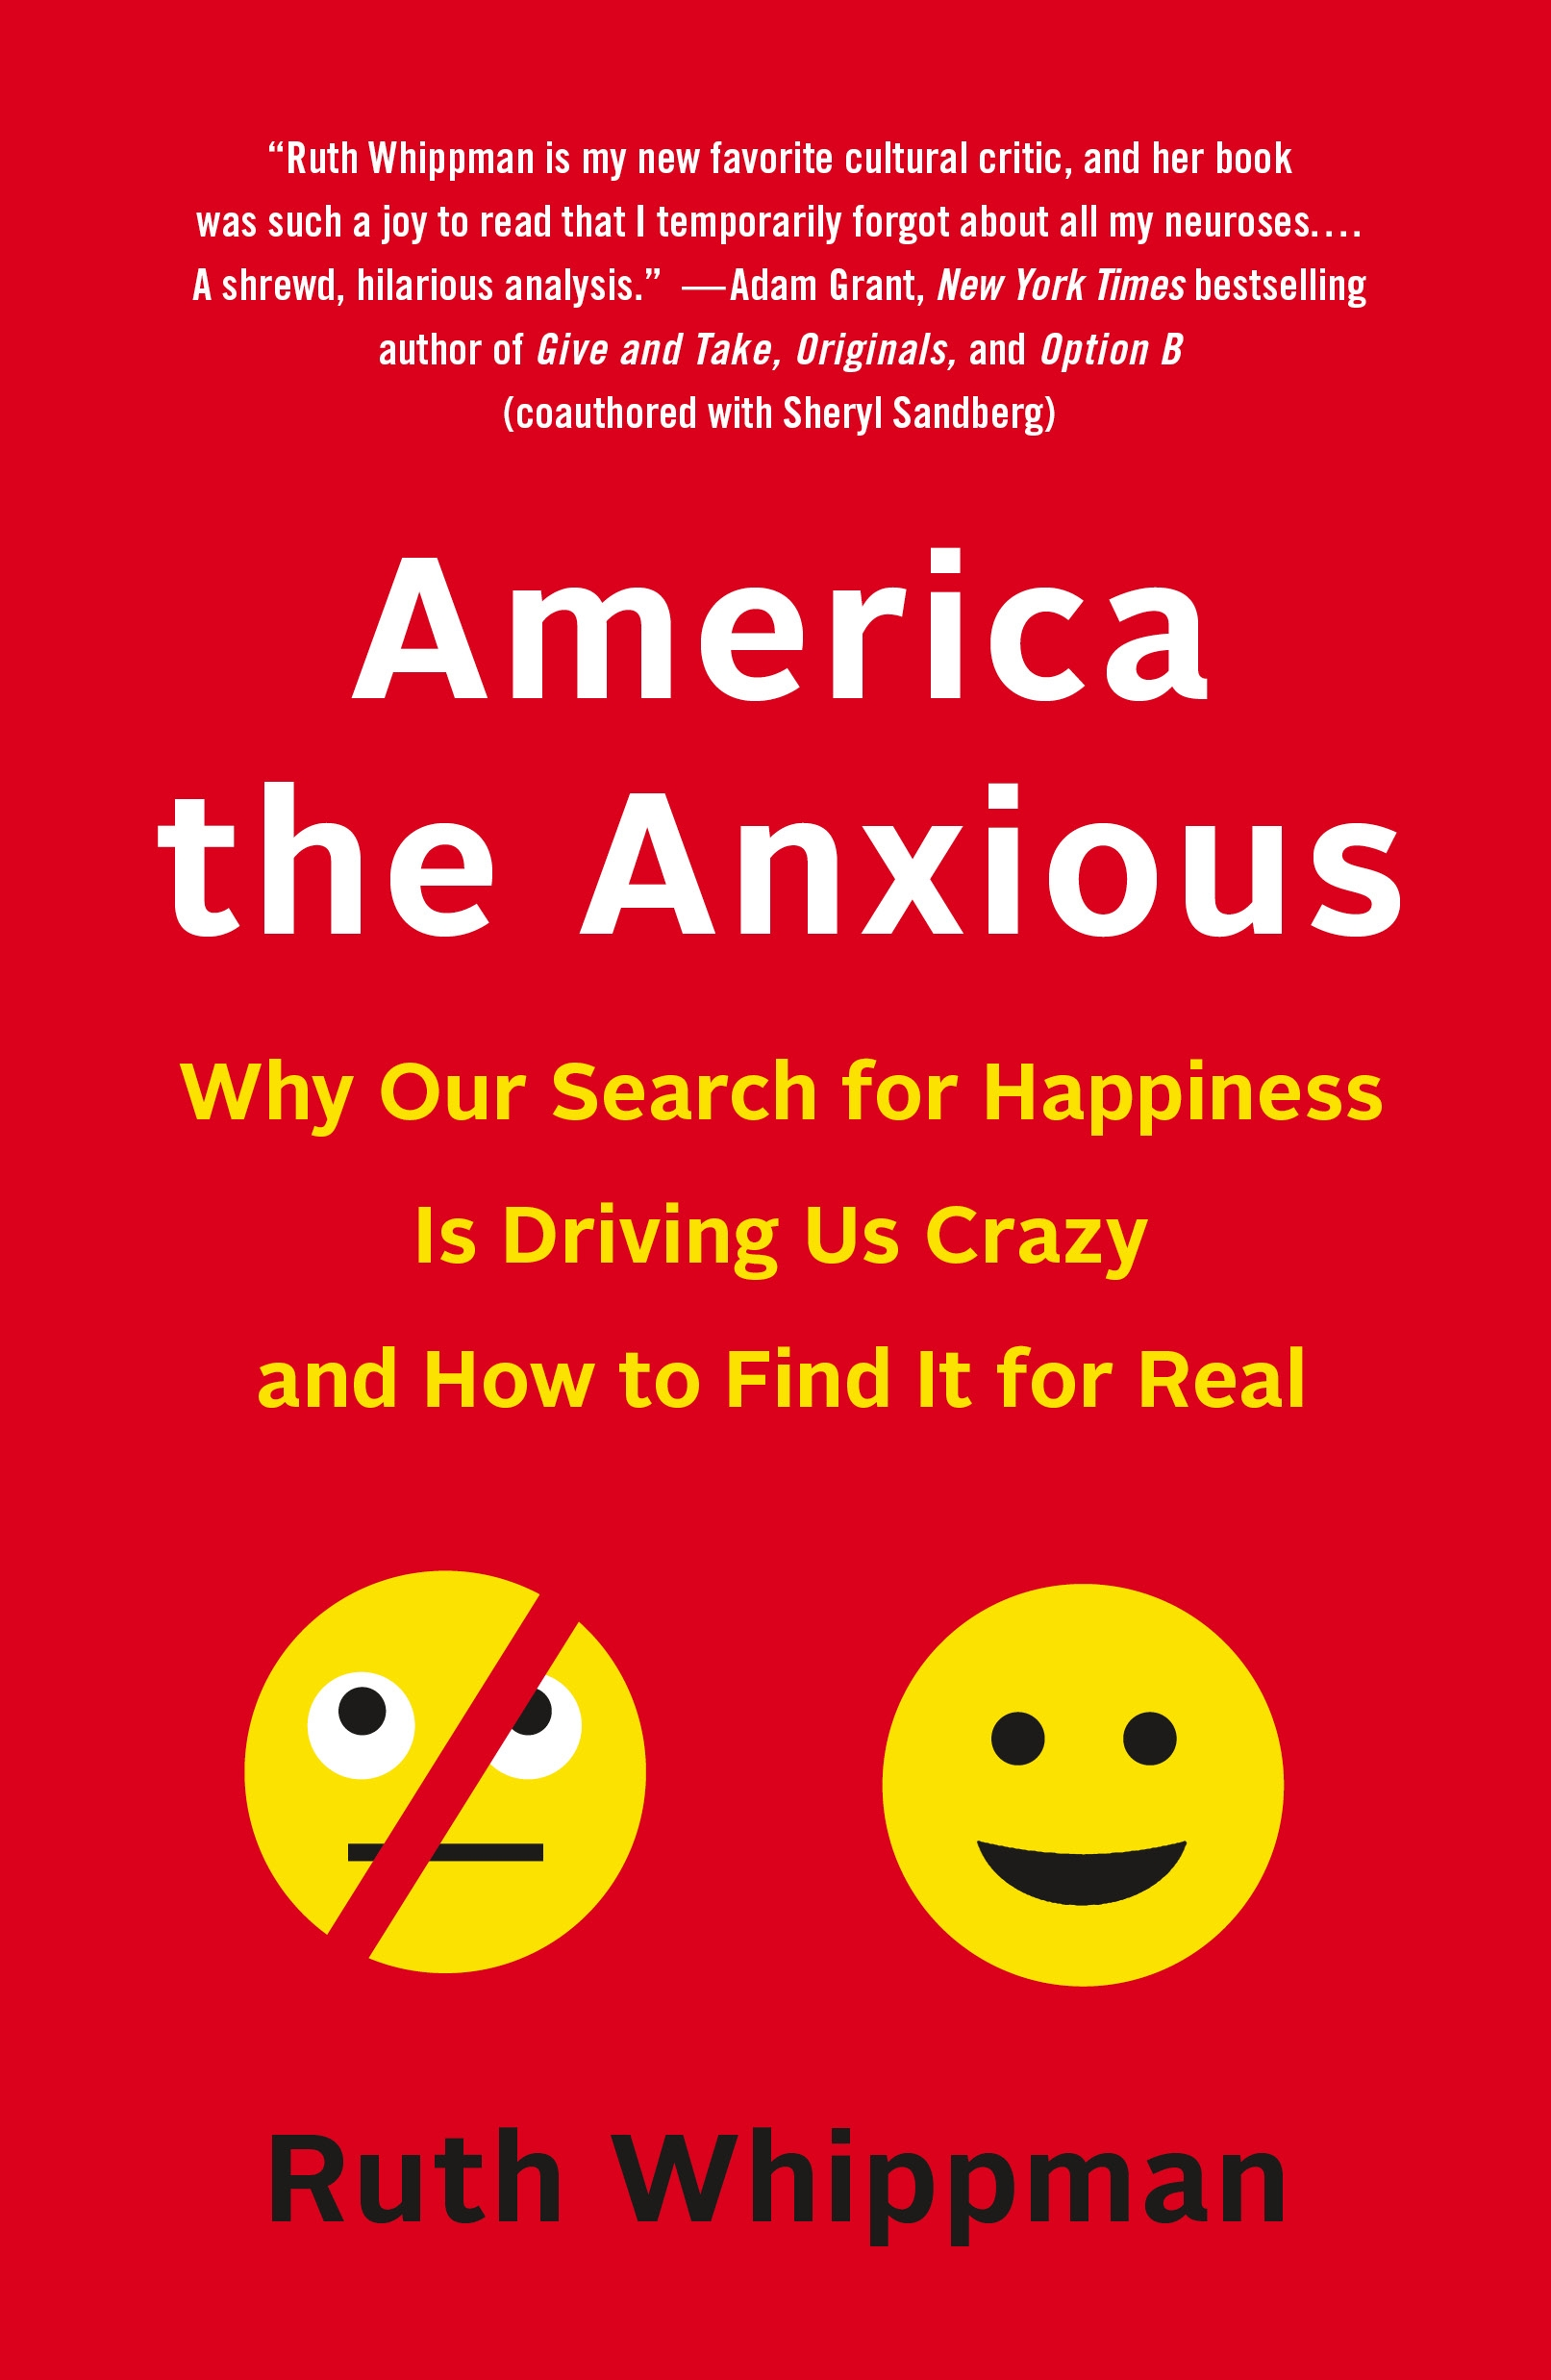 America the Anxious How Our Pursuit of Happiness Is Creating a Nation of Nervous Wrecks